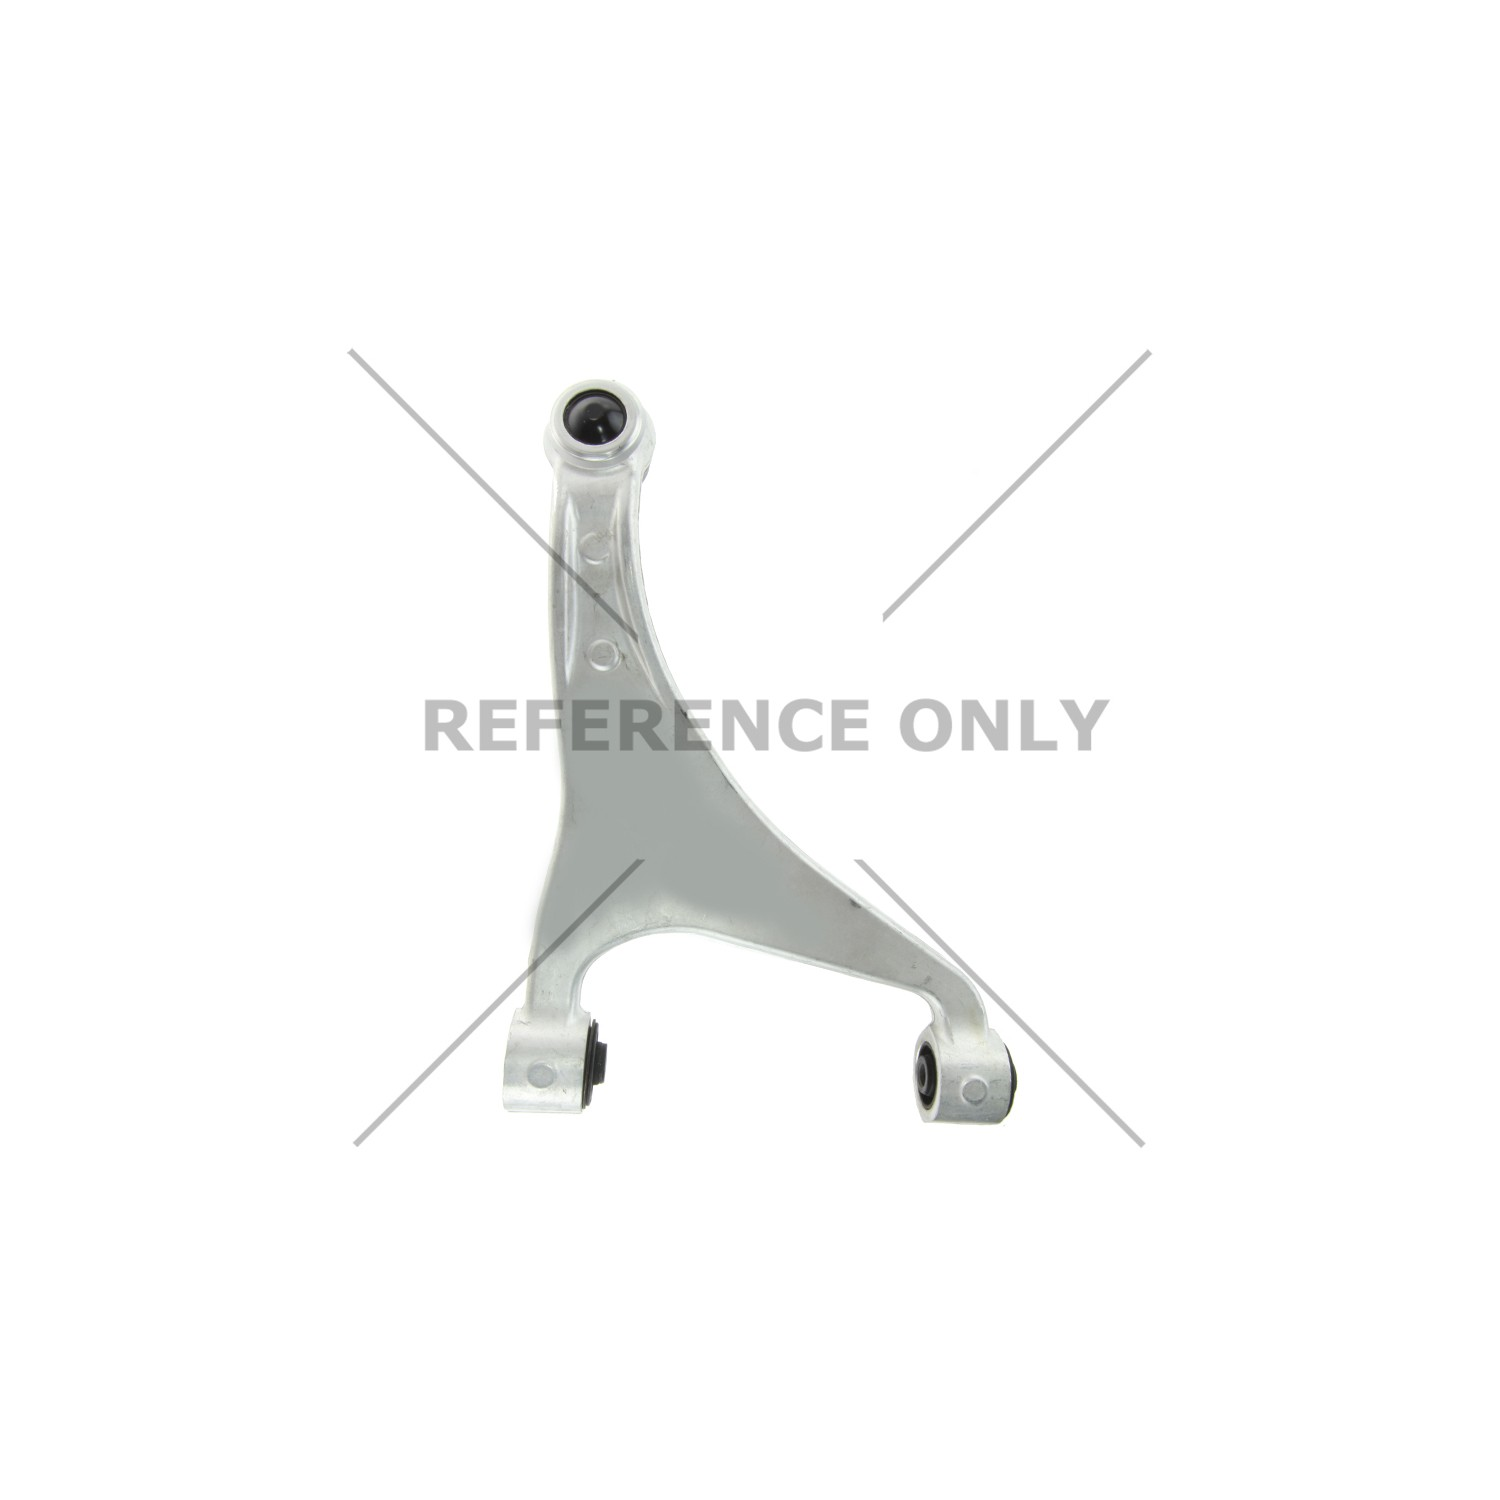 Dorman 522-554 Front Right Upper Suspension Control Arm and Ball Joint Assembly for Select Infiniti Models